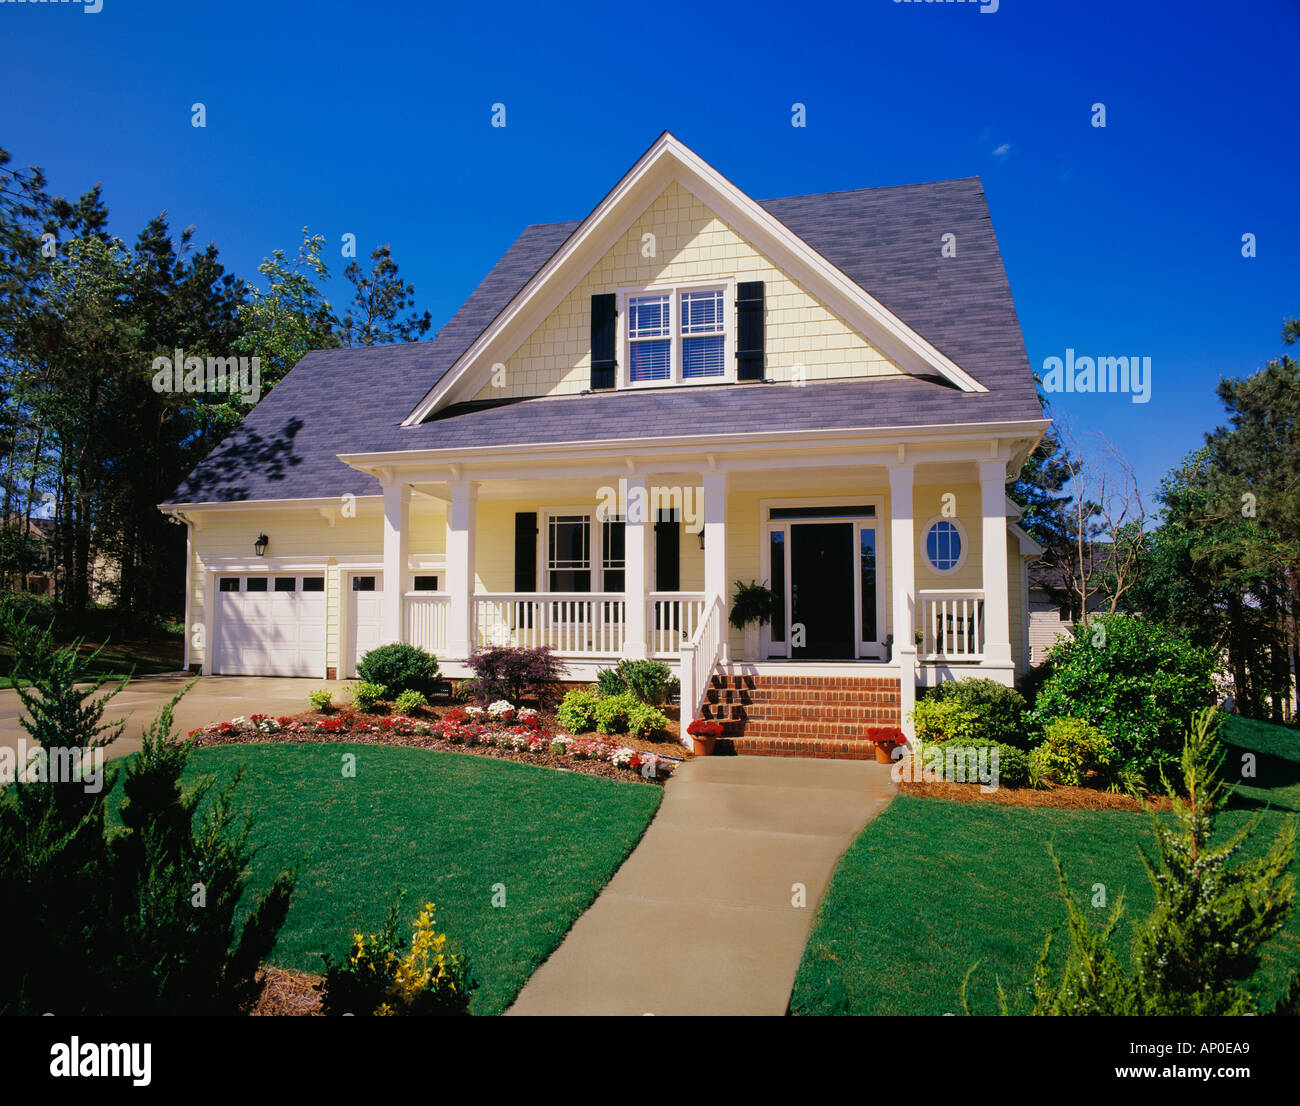 Front Porch Of Yellow House Stock Photo: Small Two Story Yellow House With Black Shutters A Large